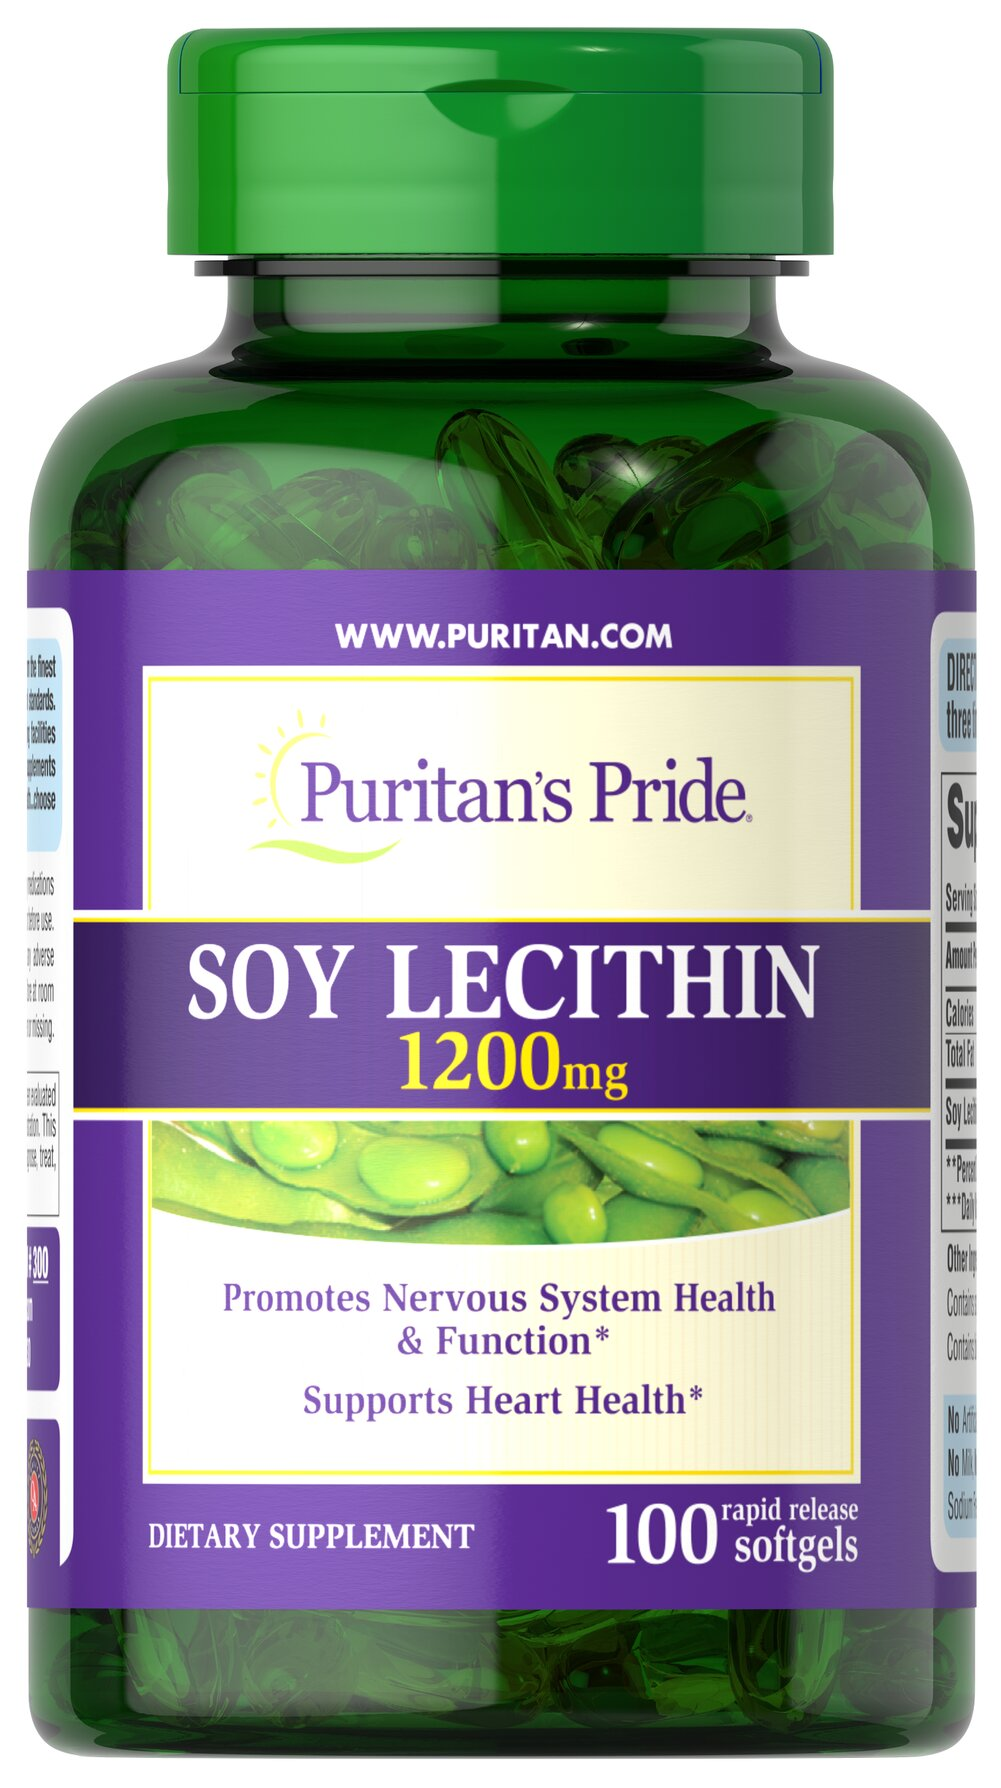 Soy Lecithin 1200 mg <p>Lecithin is an important natural source of Choline and Inositol, two nutrients important for the proper functioning of the body.** Since levels of phospholipids in the brain can decline as you get older, it may be especially important to supplement with a high-quality Lecithin formula from Puritan's Pride.</p> 100 Softgels 1200 mg $9.73